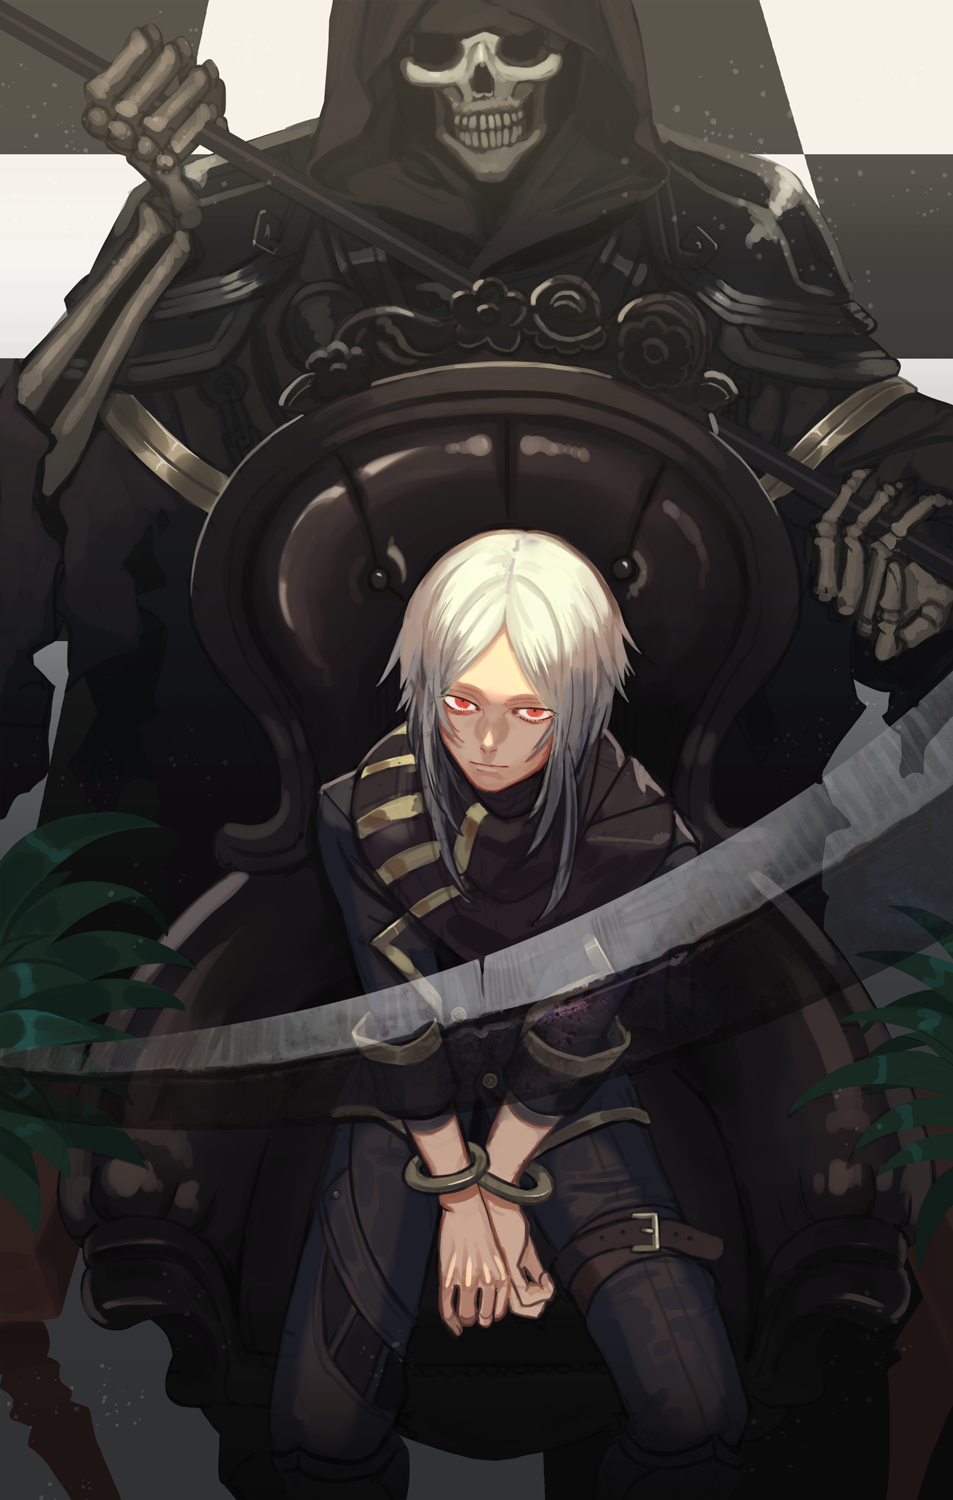 1boy armor blue_pupils bound bound_wrists brown_scarf chair checkered checkered_floor closed_mouth death_(entity) fingernails grim_reaper highres holding holding_scythe holding_weapon hood hood_up kyo_niku looking_at_viewer male_focus medium_hair original pauldrons plant potted_plant red_eyes scarf scythe shinigami shoulder_armor sitting skeleton sleeves_rolled_up striped striped_scarf thigh_strap torn torn_clothes transparent weapon white_hair